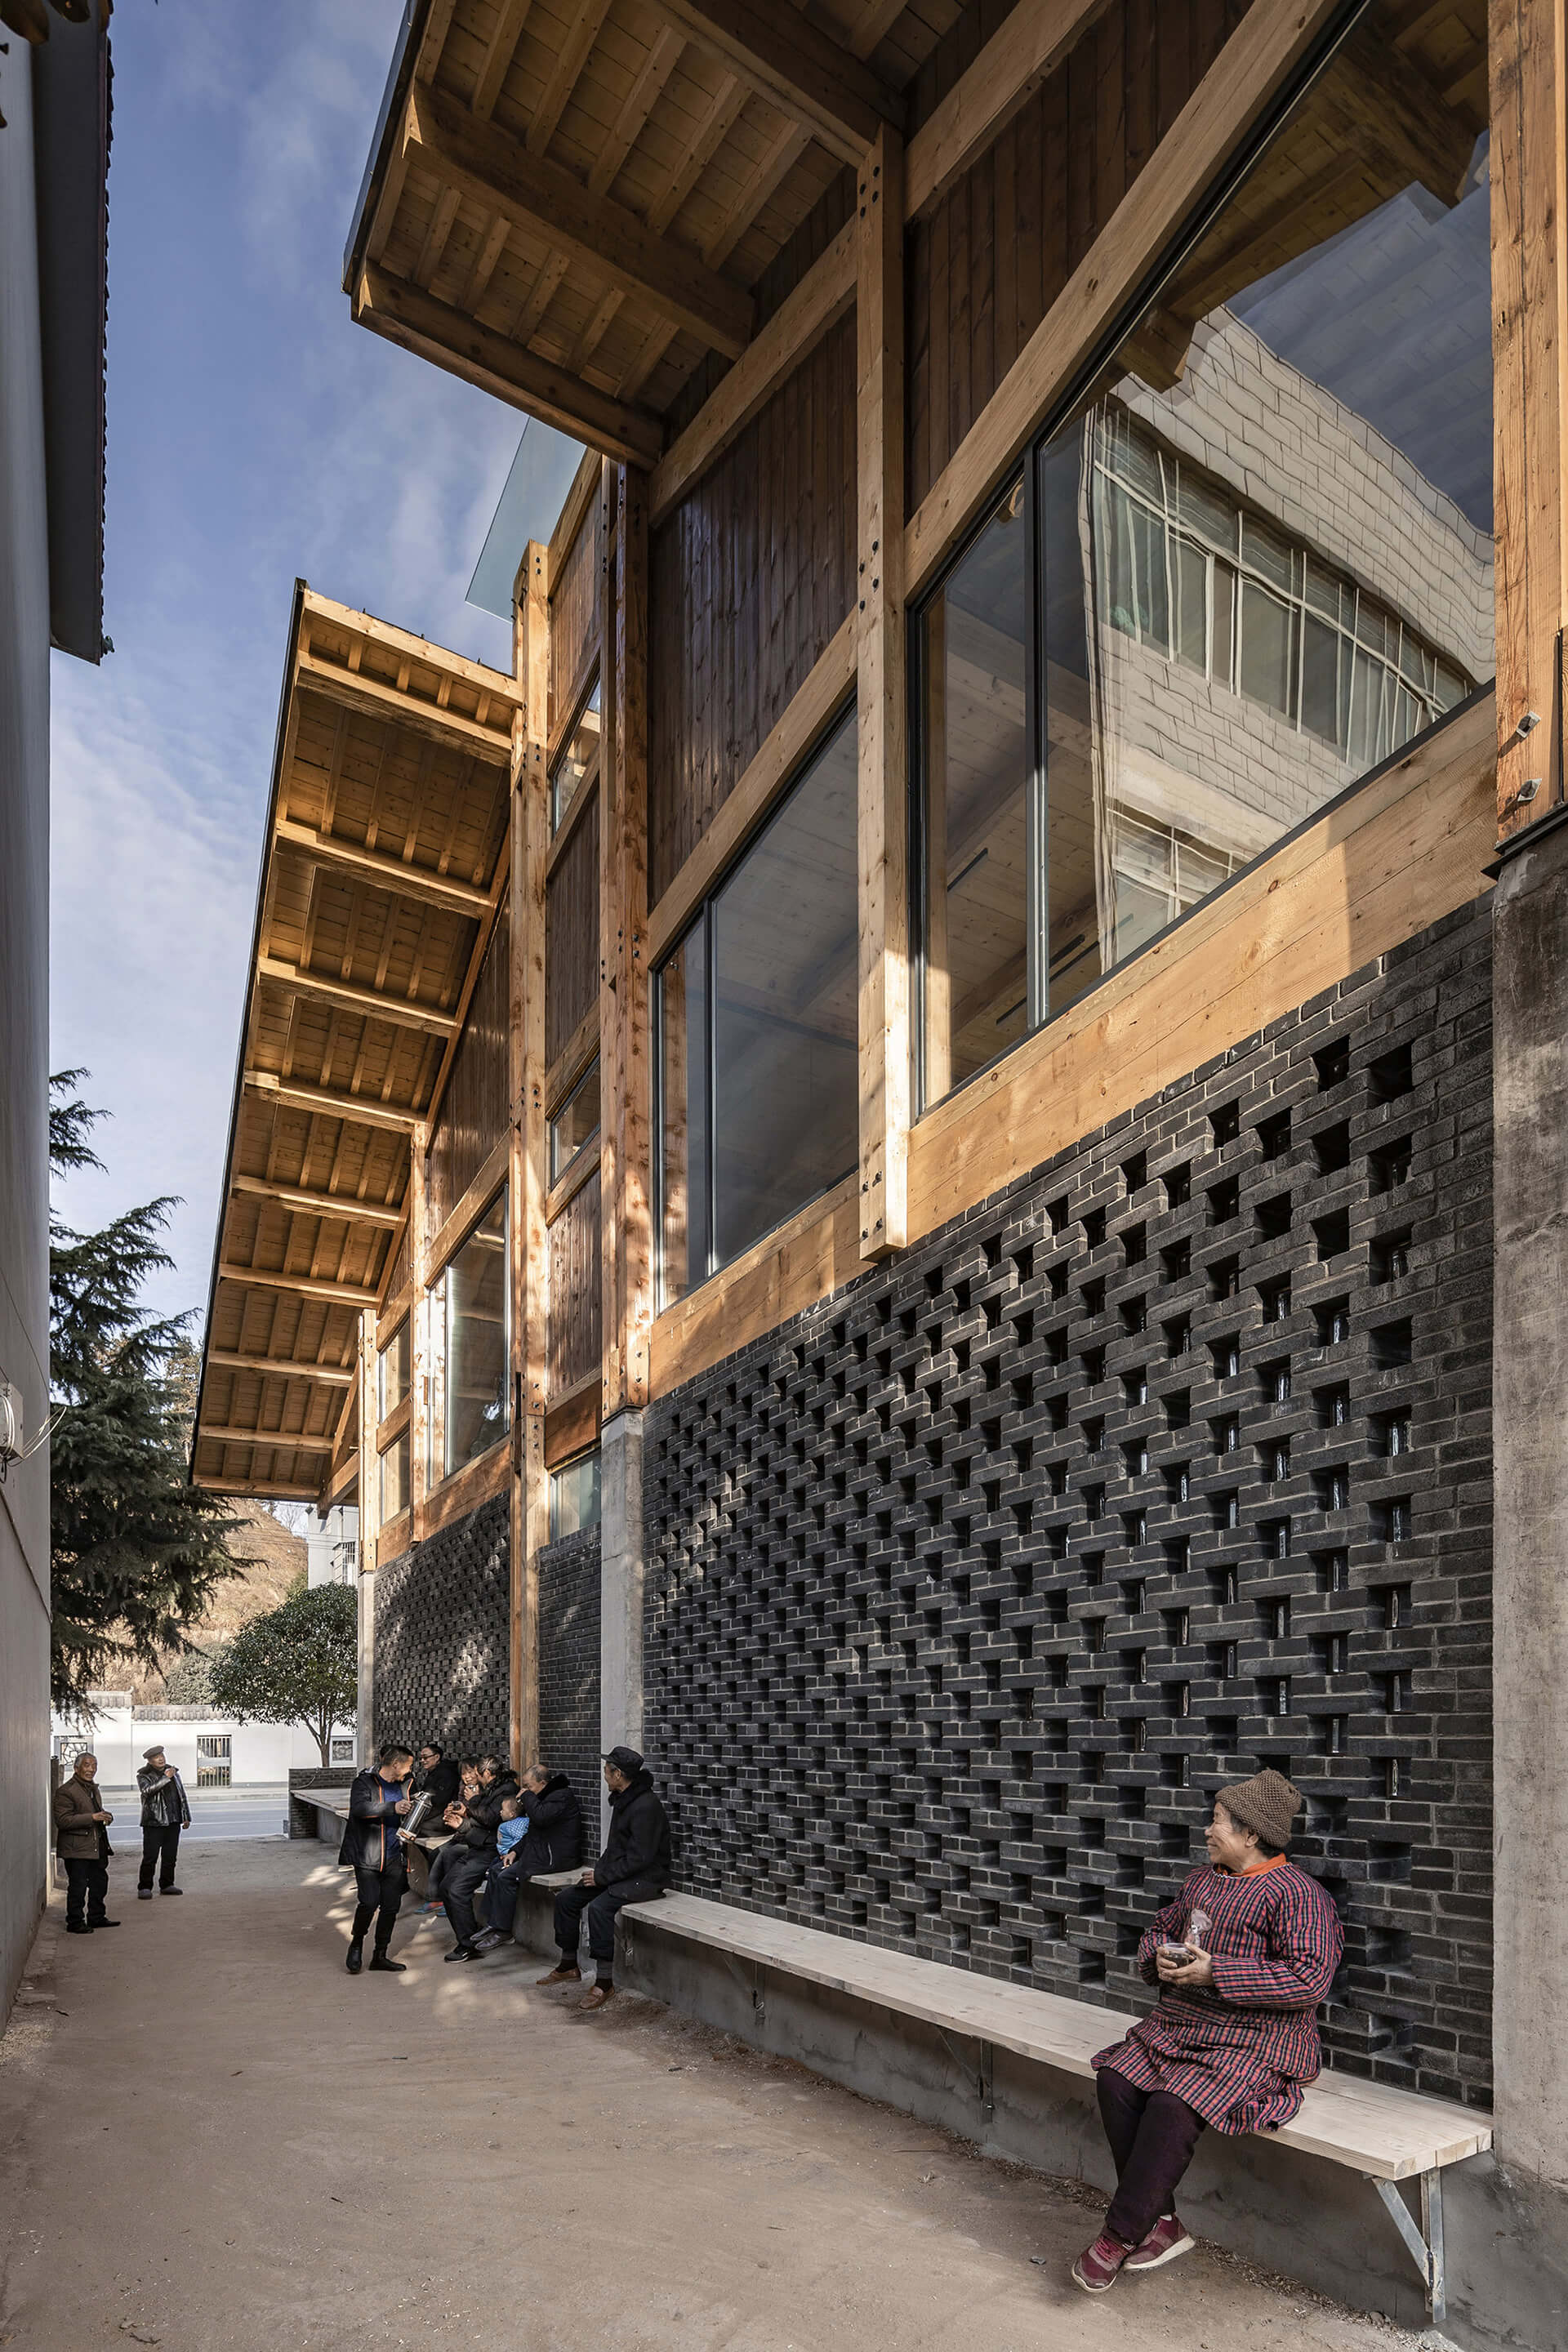 Villagers resting on the wooden bench running along the building's west side | Party and Public Service Center of Yuanheguan Village by LUO Studio | STIRworld